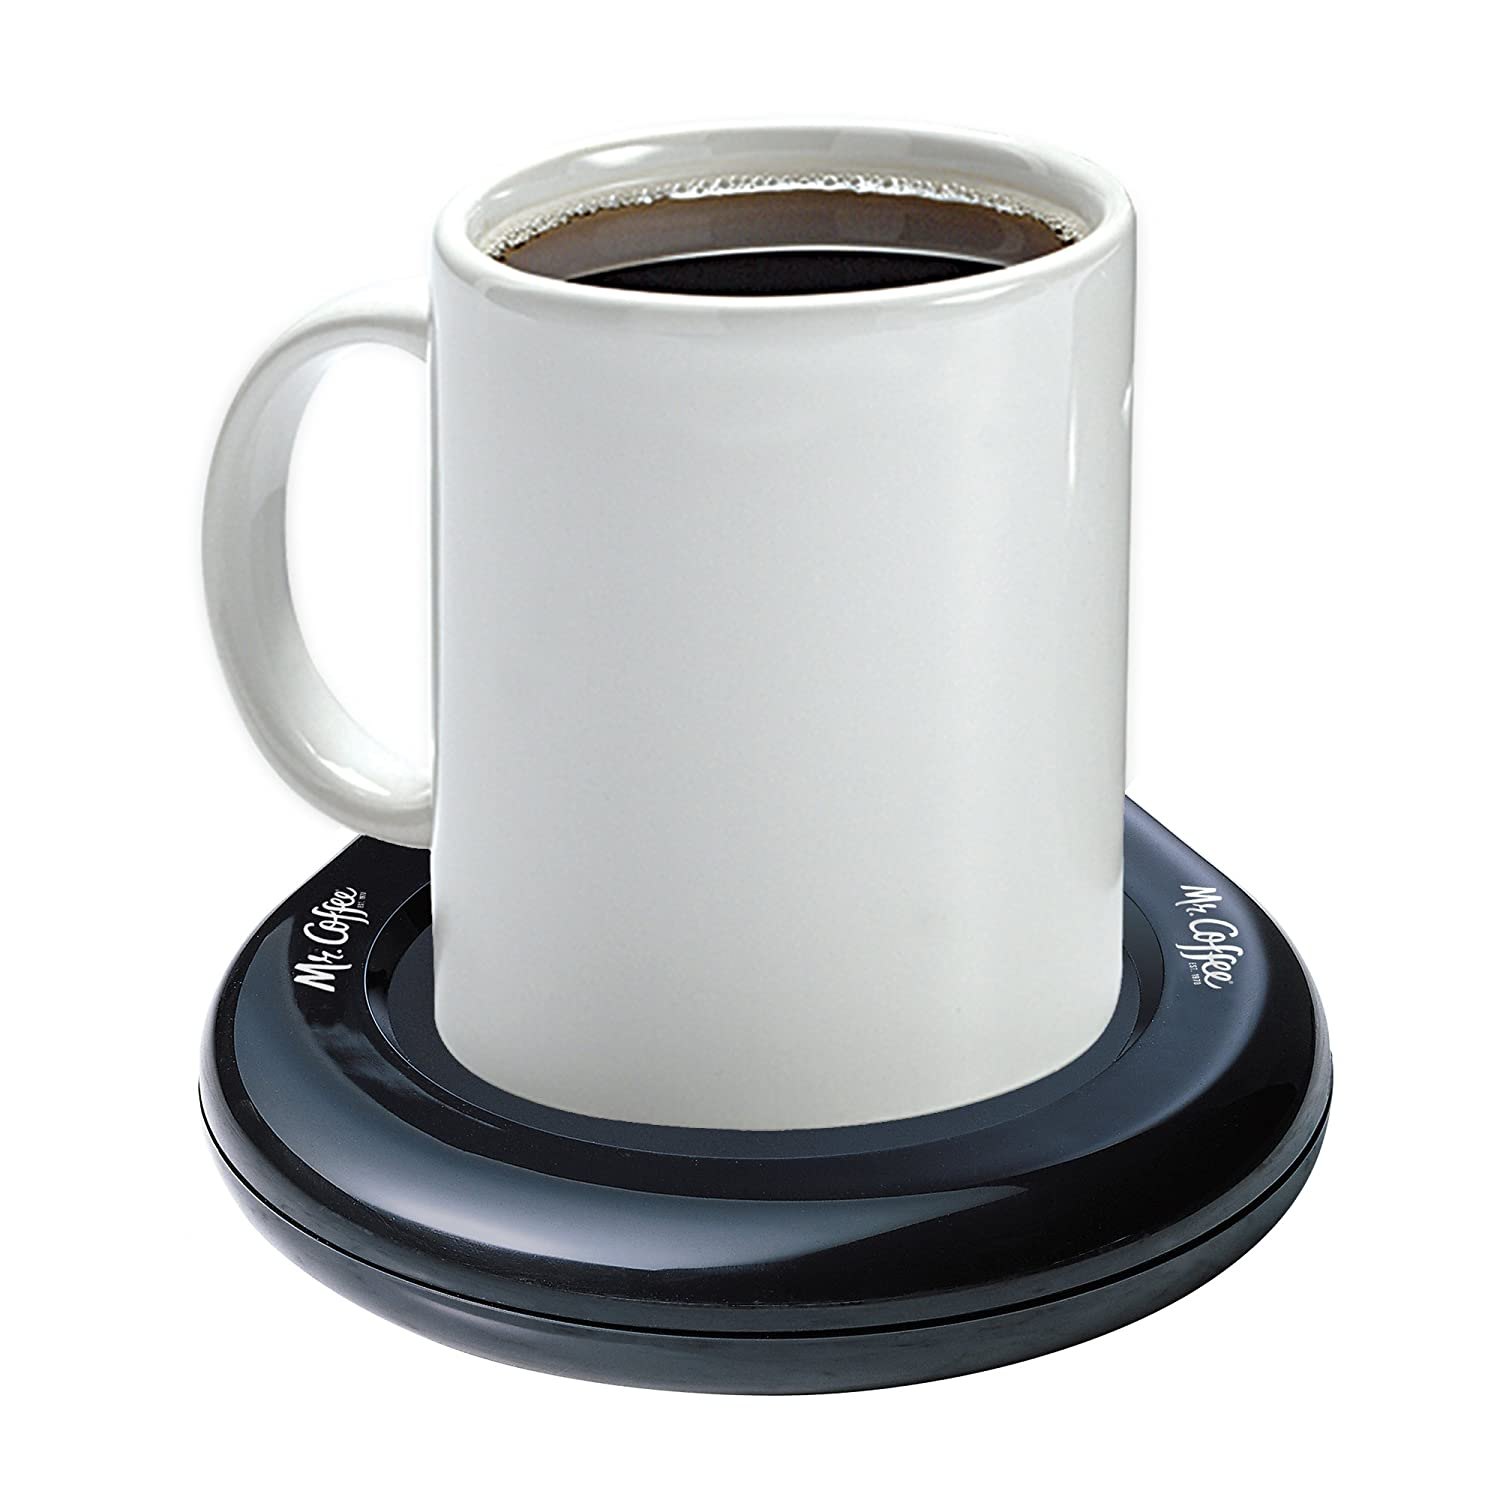 Mr. Coffee Mug Warmer For Office/Home Use, MWBLK · Best Home Office  Accessories